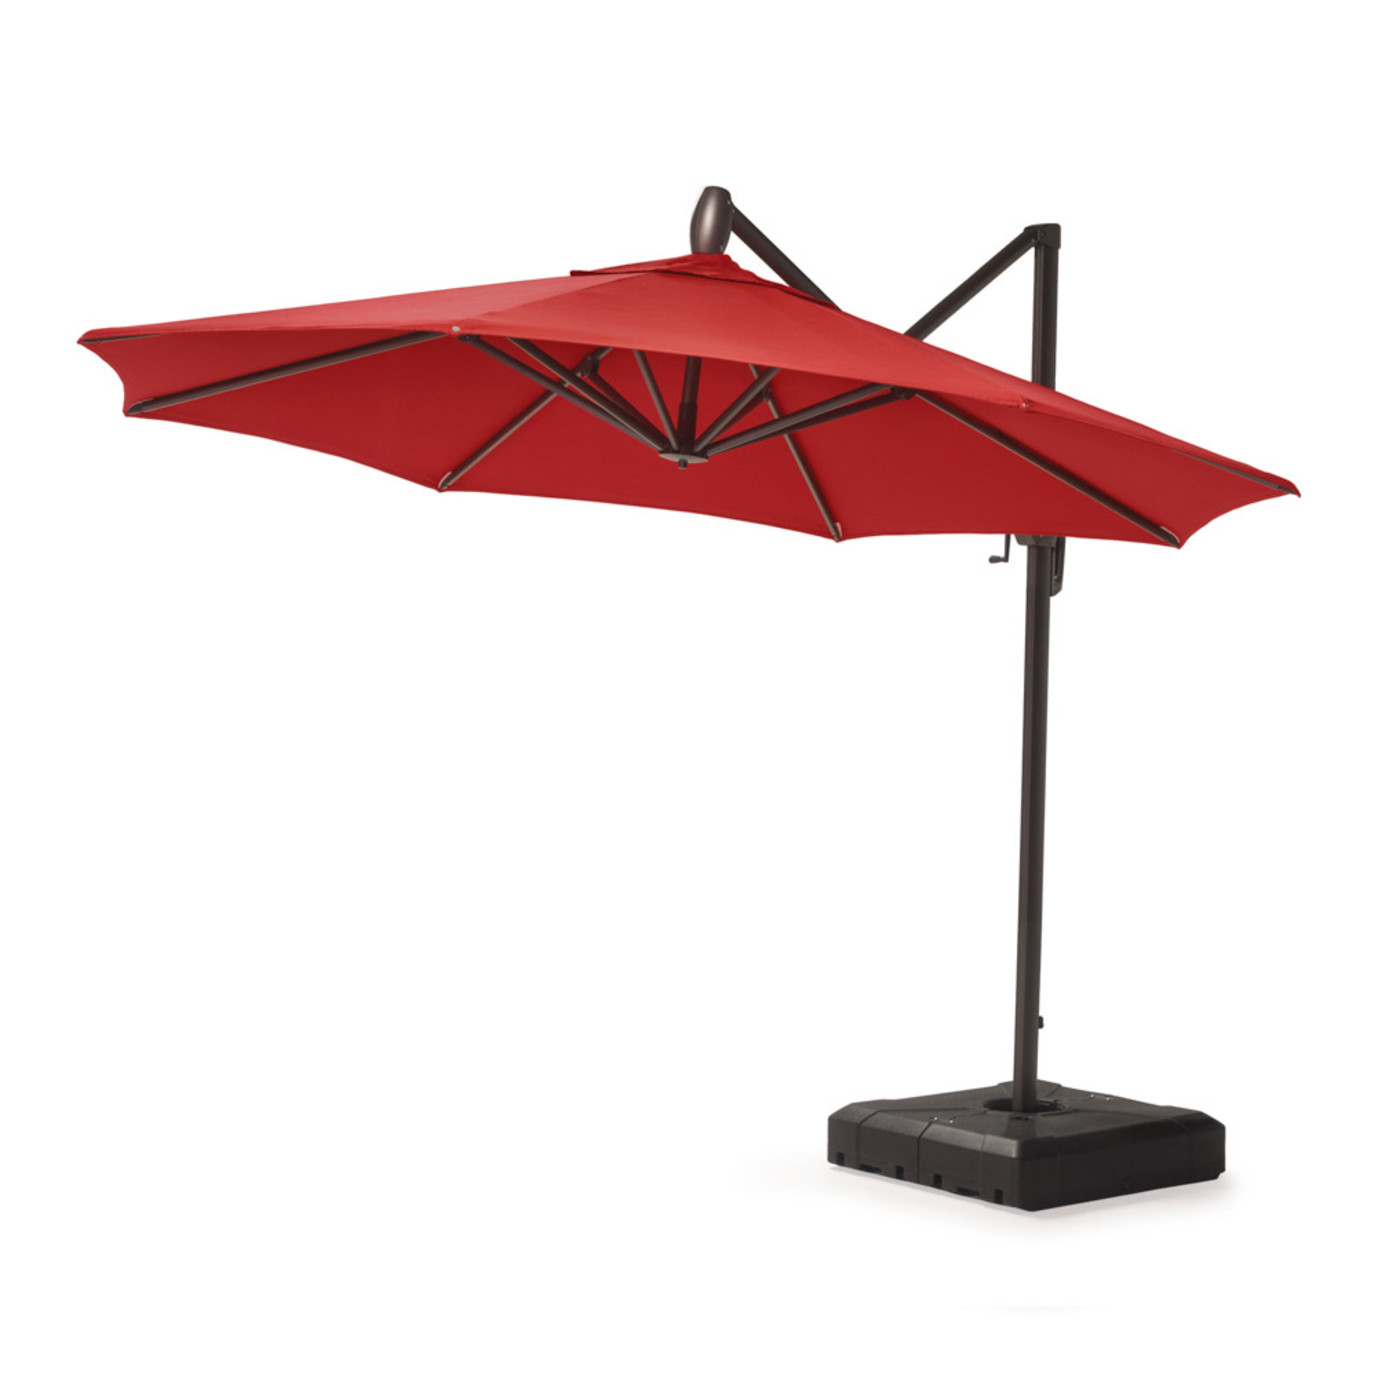 Modular Outdoor 10' Round Umbrella - Sunset Red